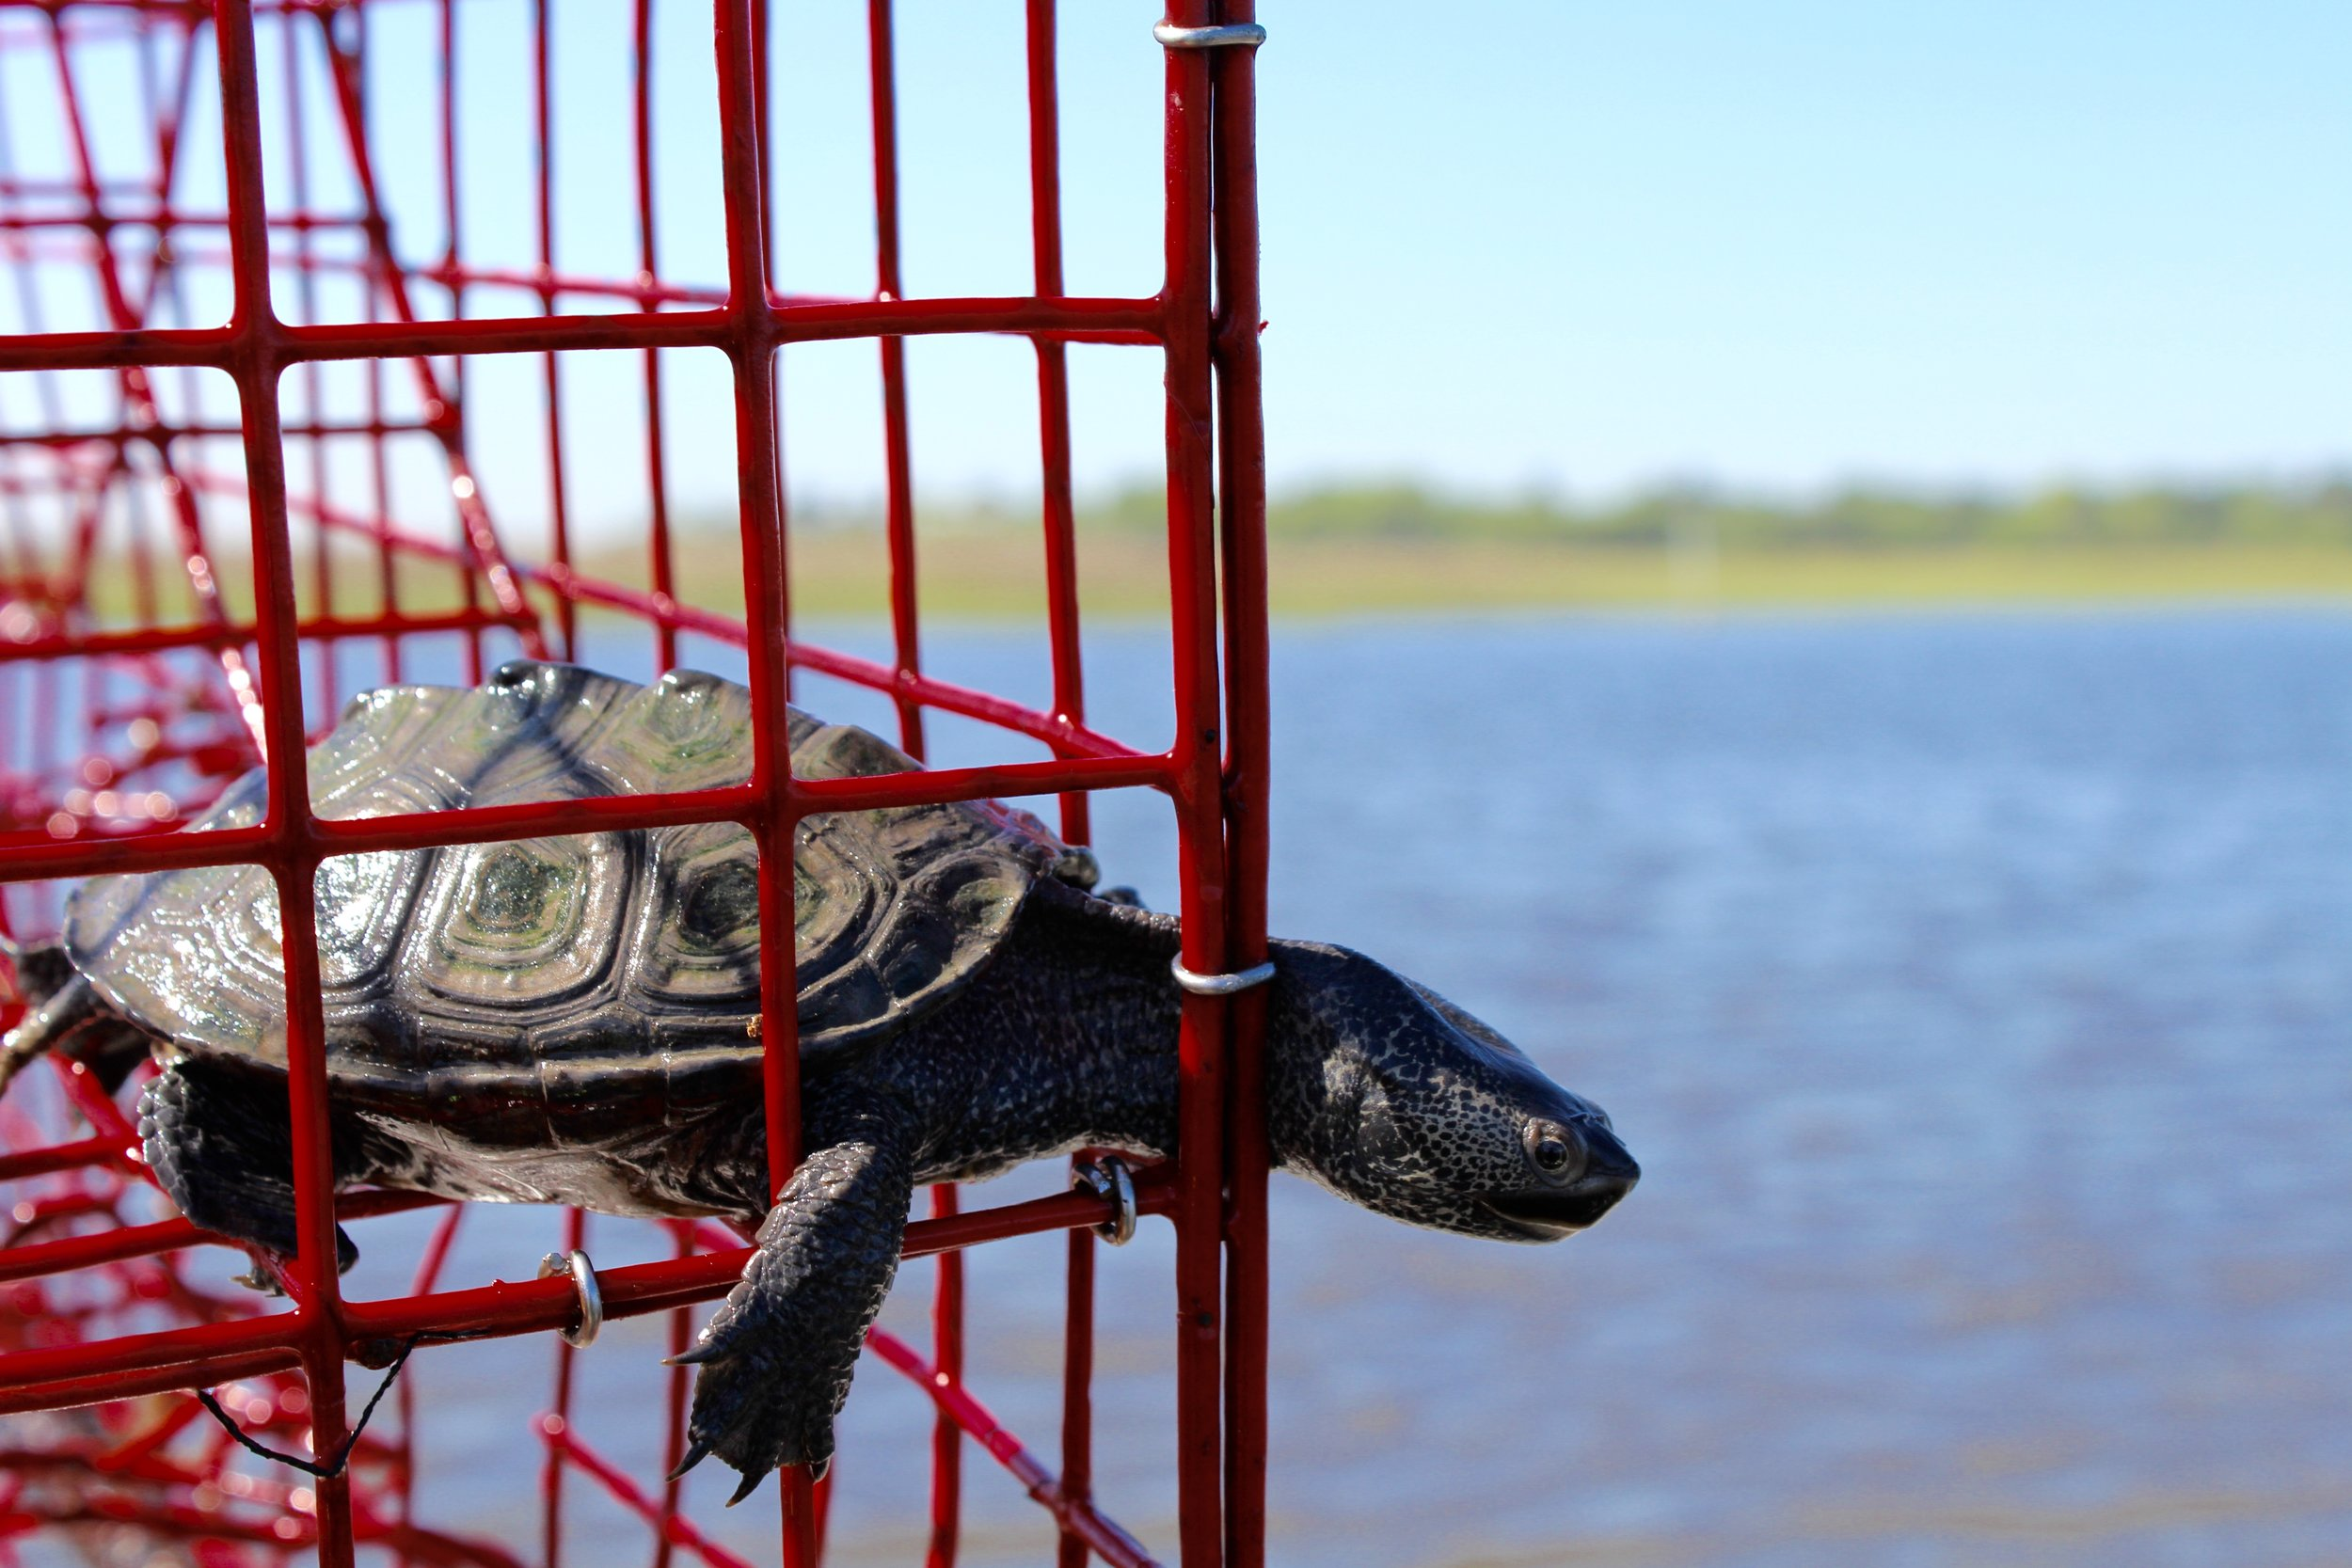 Diamondback terrapins that find their way in to crab pots are often unable to get back out. (Photo: E. Weeks/SCDNR)